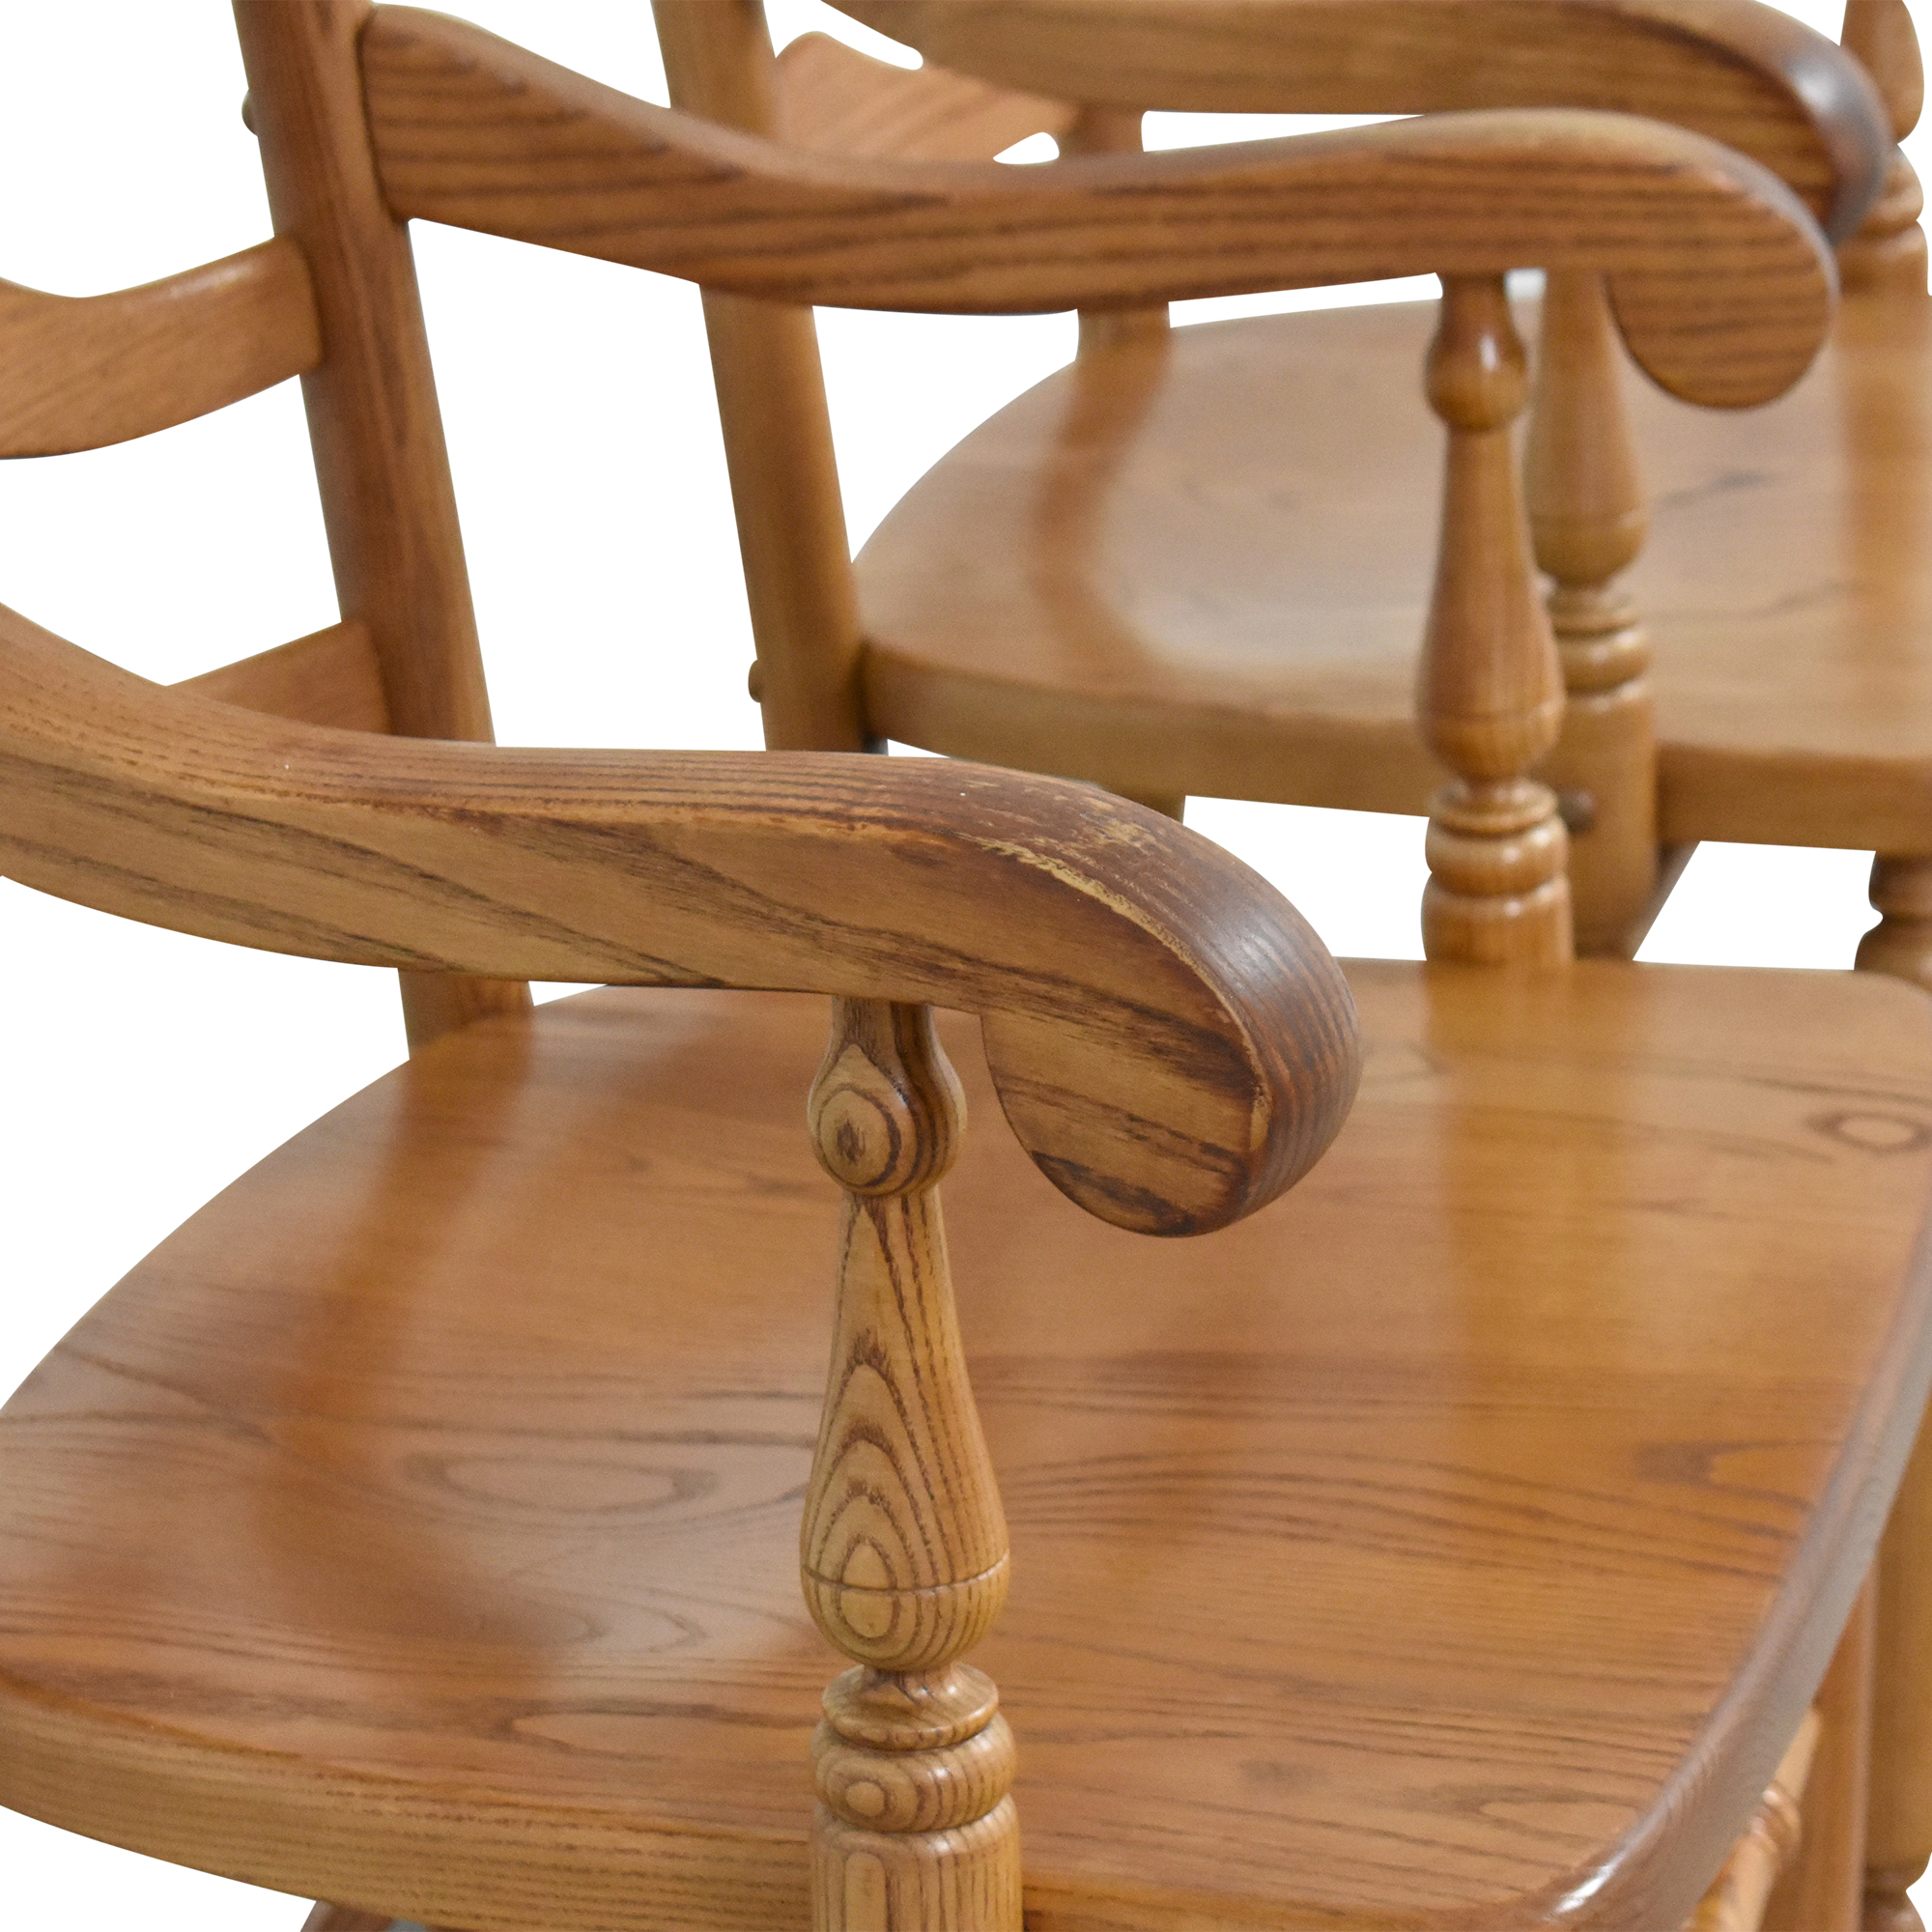 S. Bent & Bros S. Bent & Bros Ladder Back Dining Arm Chairs dimensions